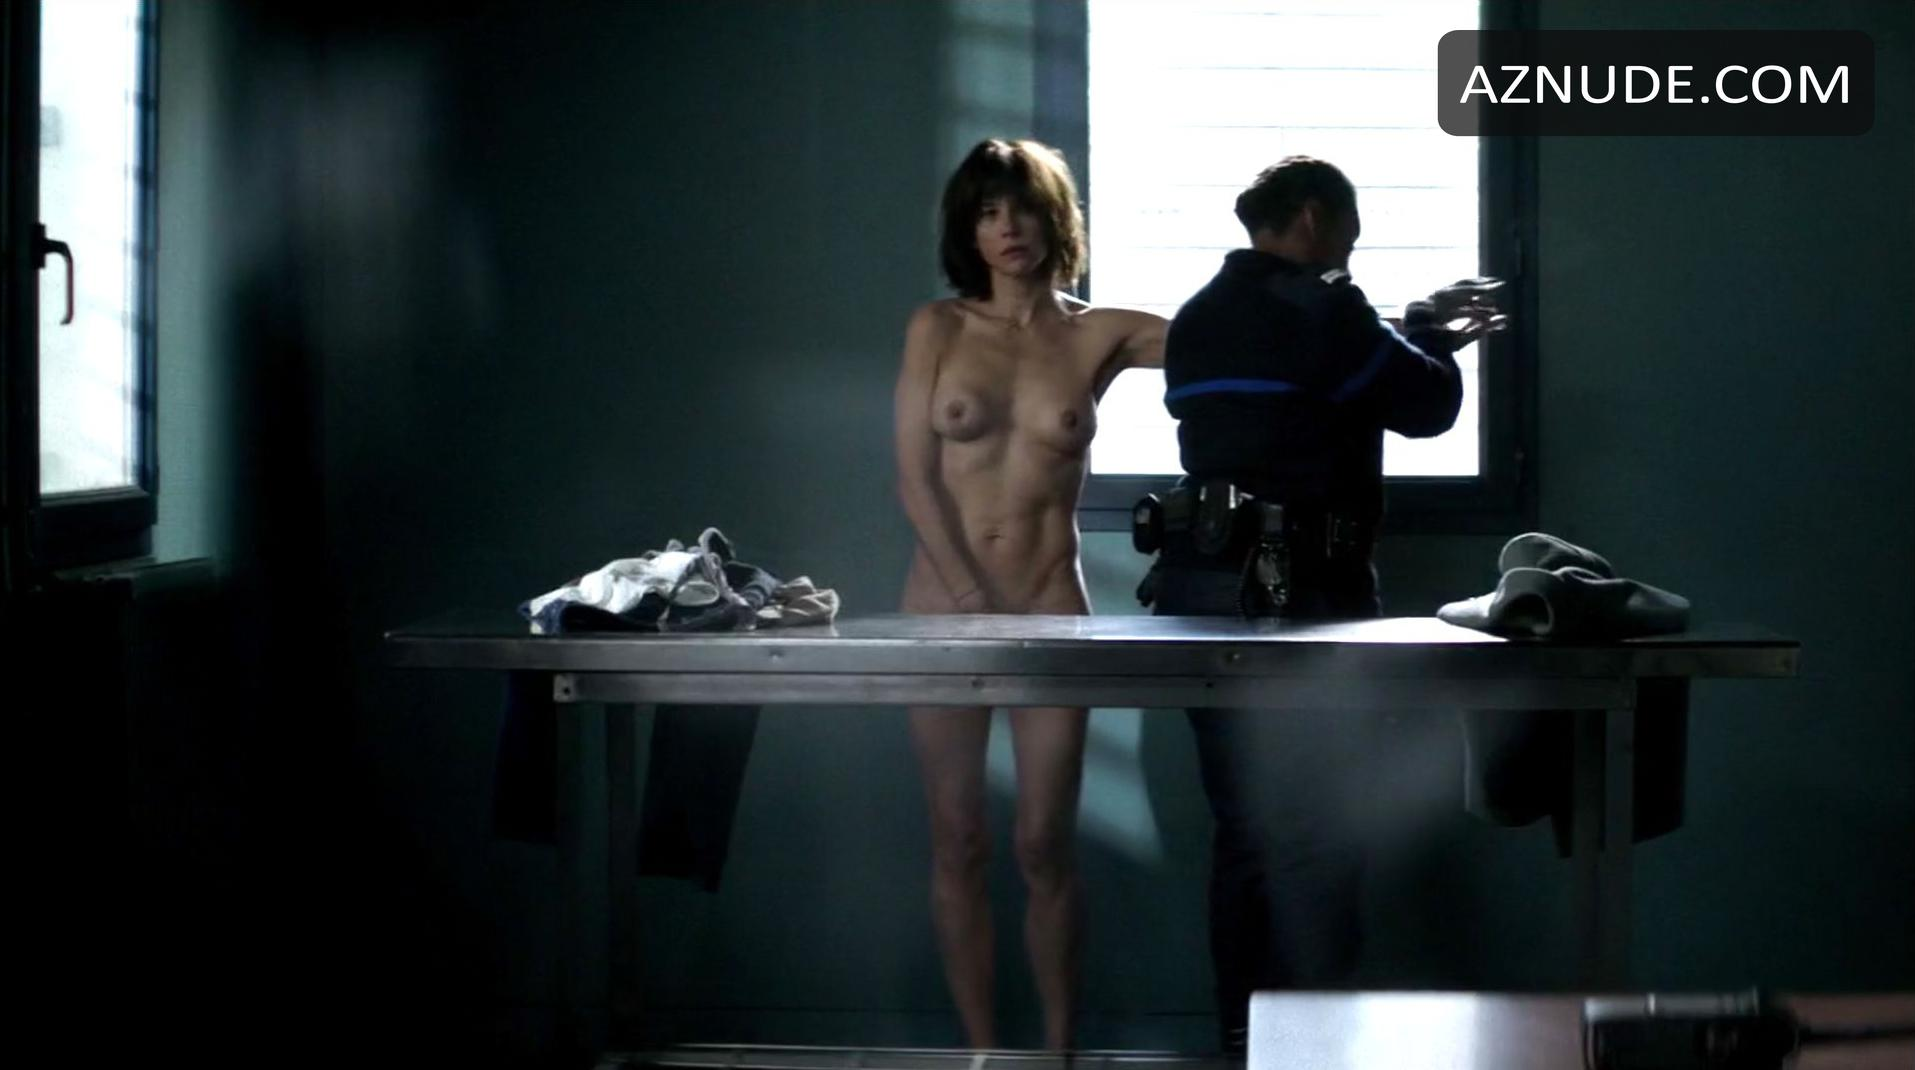 Are not Marisol nichols strip search opinion you